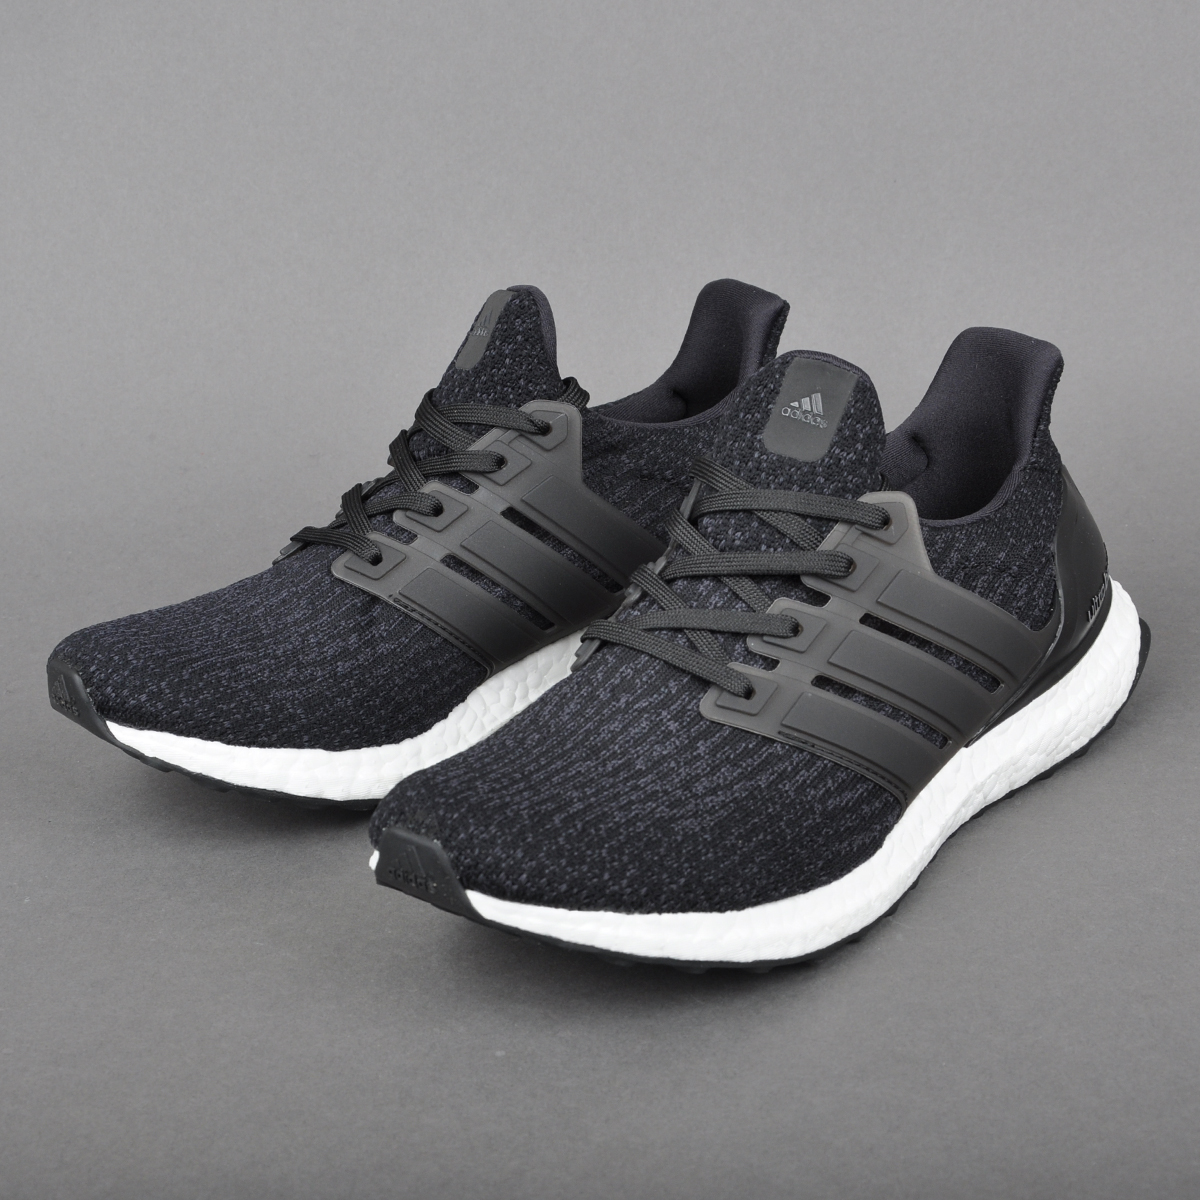 best service 6f2af ad3c0 adidas Ultra Boost 3.0, core black  core black  grey